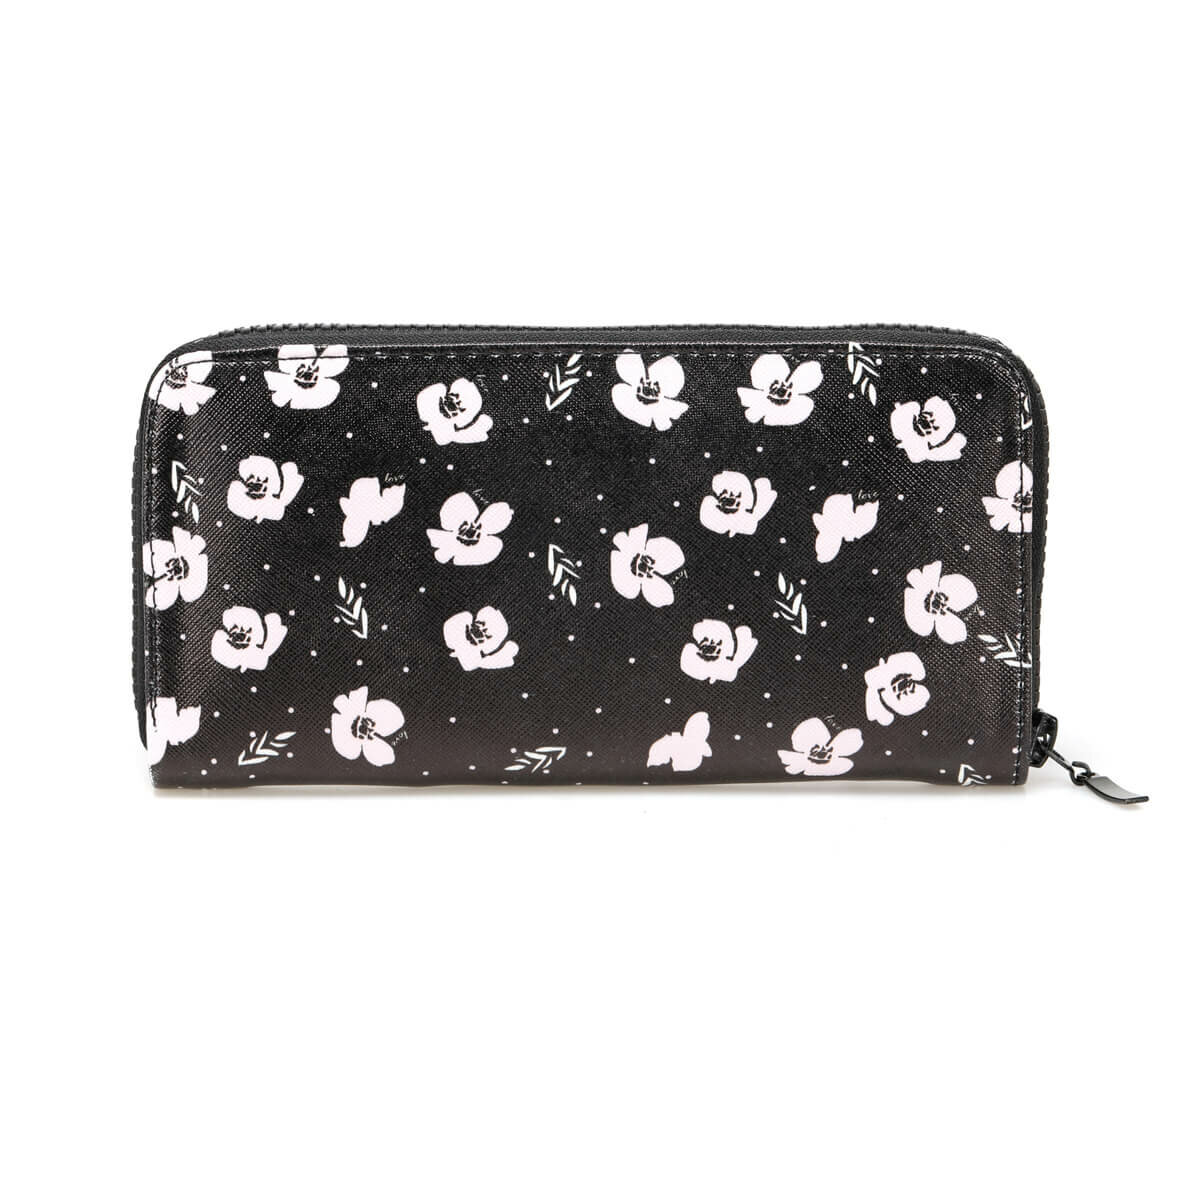 FLO 91.968. 008.D Black Women 'S Wallet Polaris